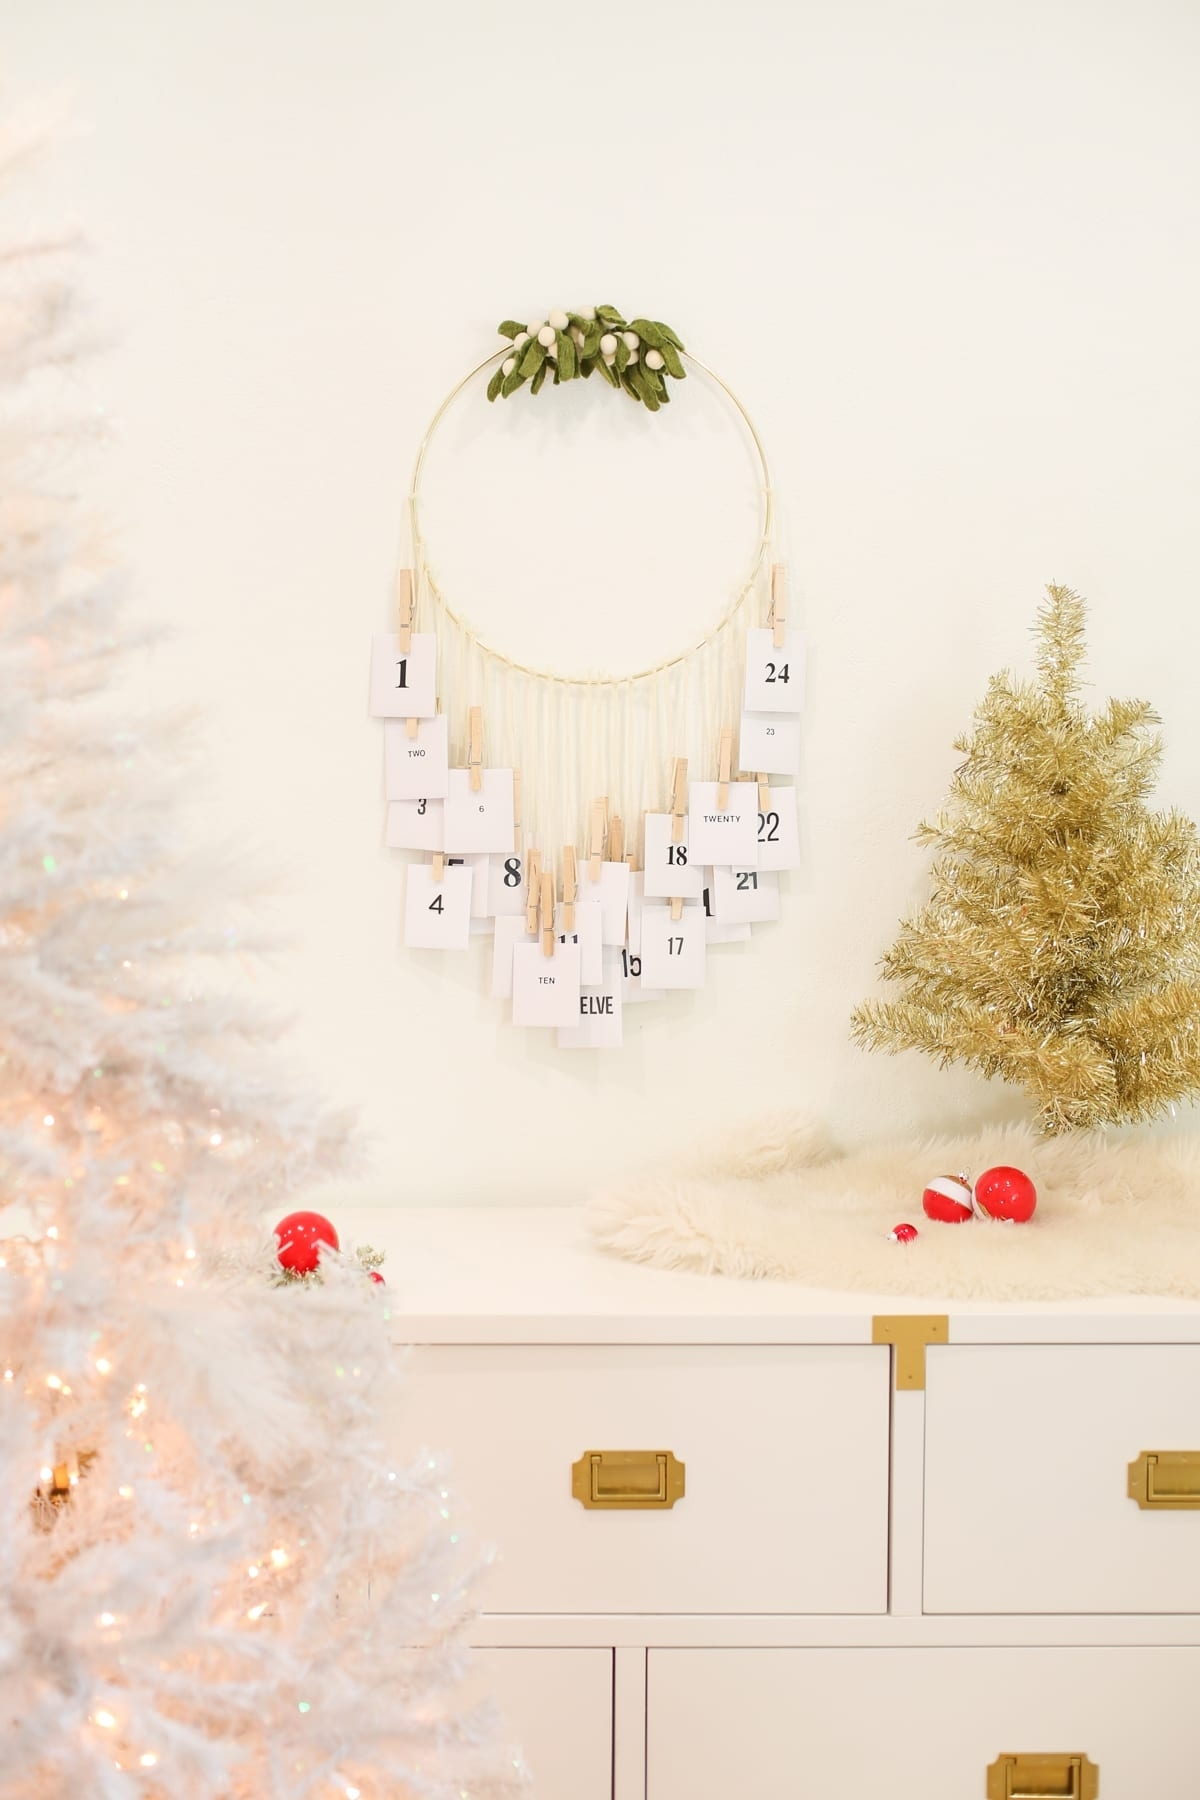 Acts Of Kindness Advent Calendar With Free Printables | Lovely Indeed with Free Printable Advent Calendars Wallpaper